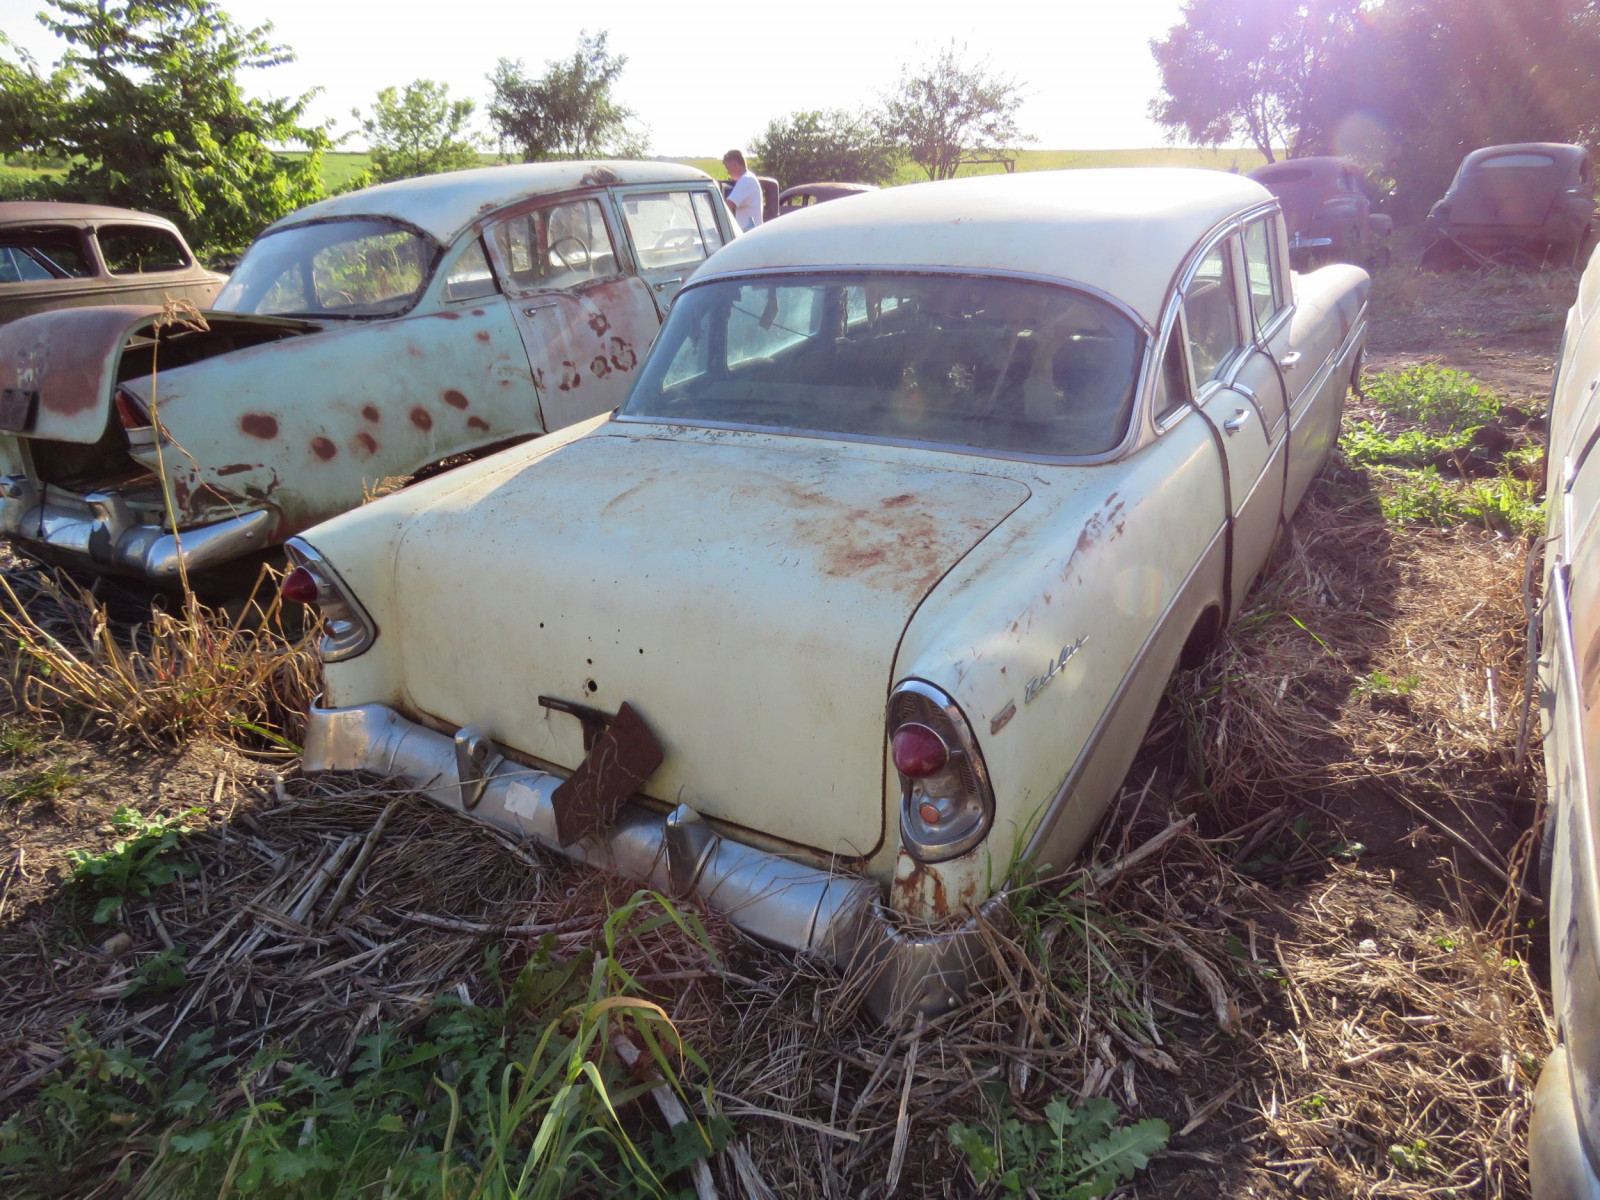 1956 Chevrolet Belair 4dr Sedan for Project or Parts - Image 3